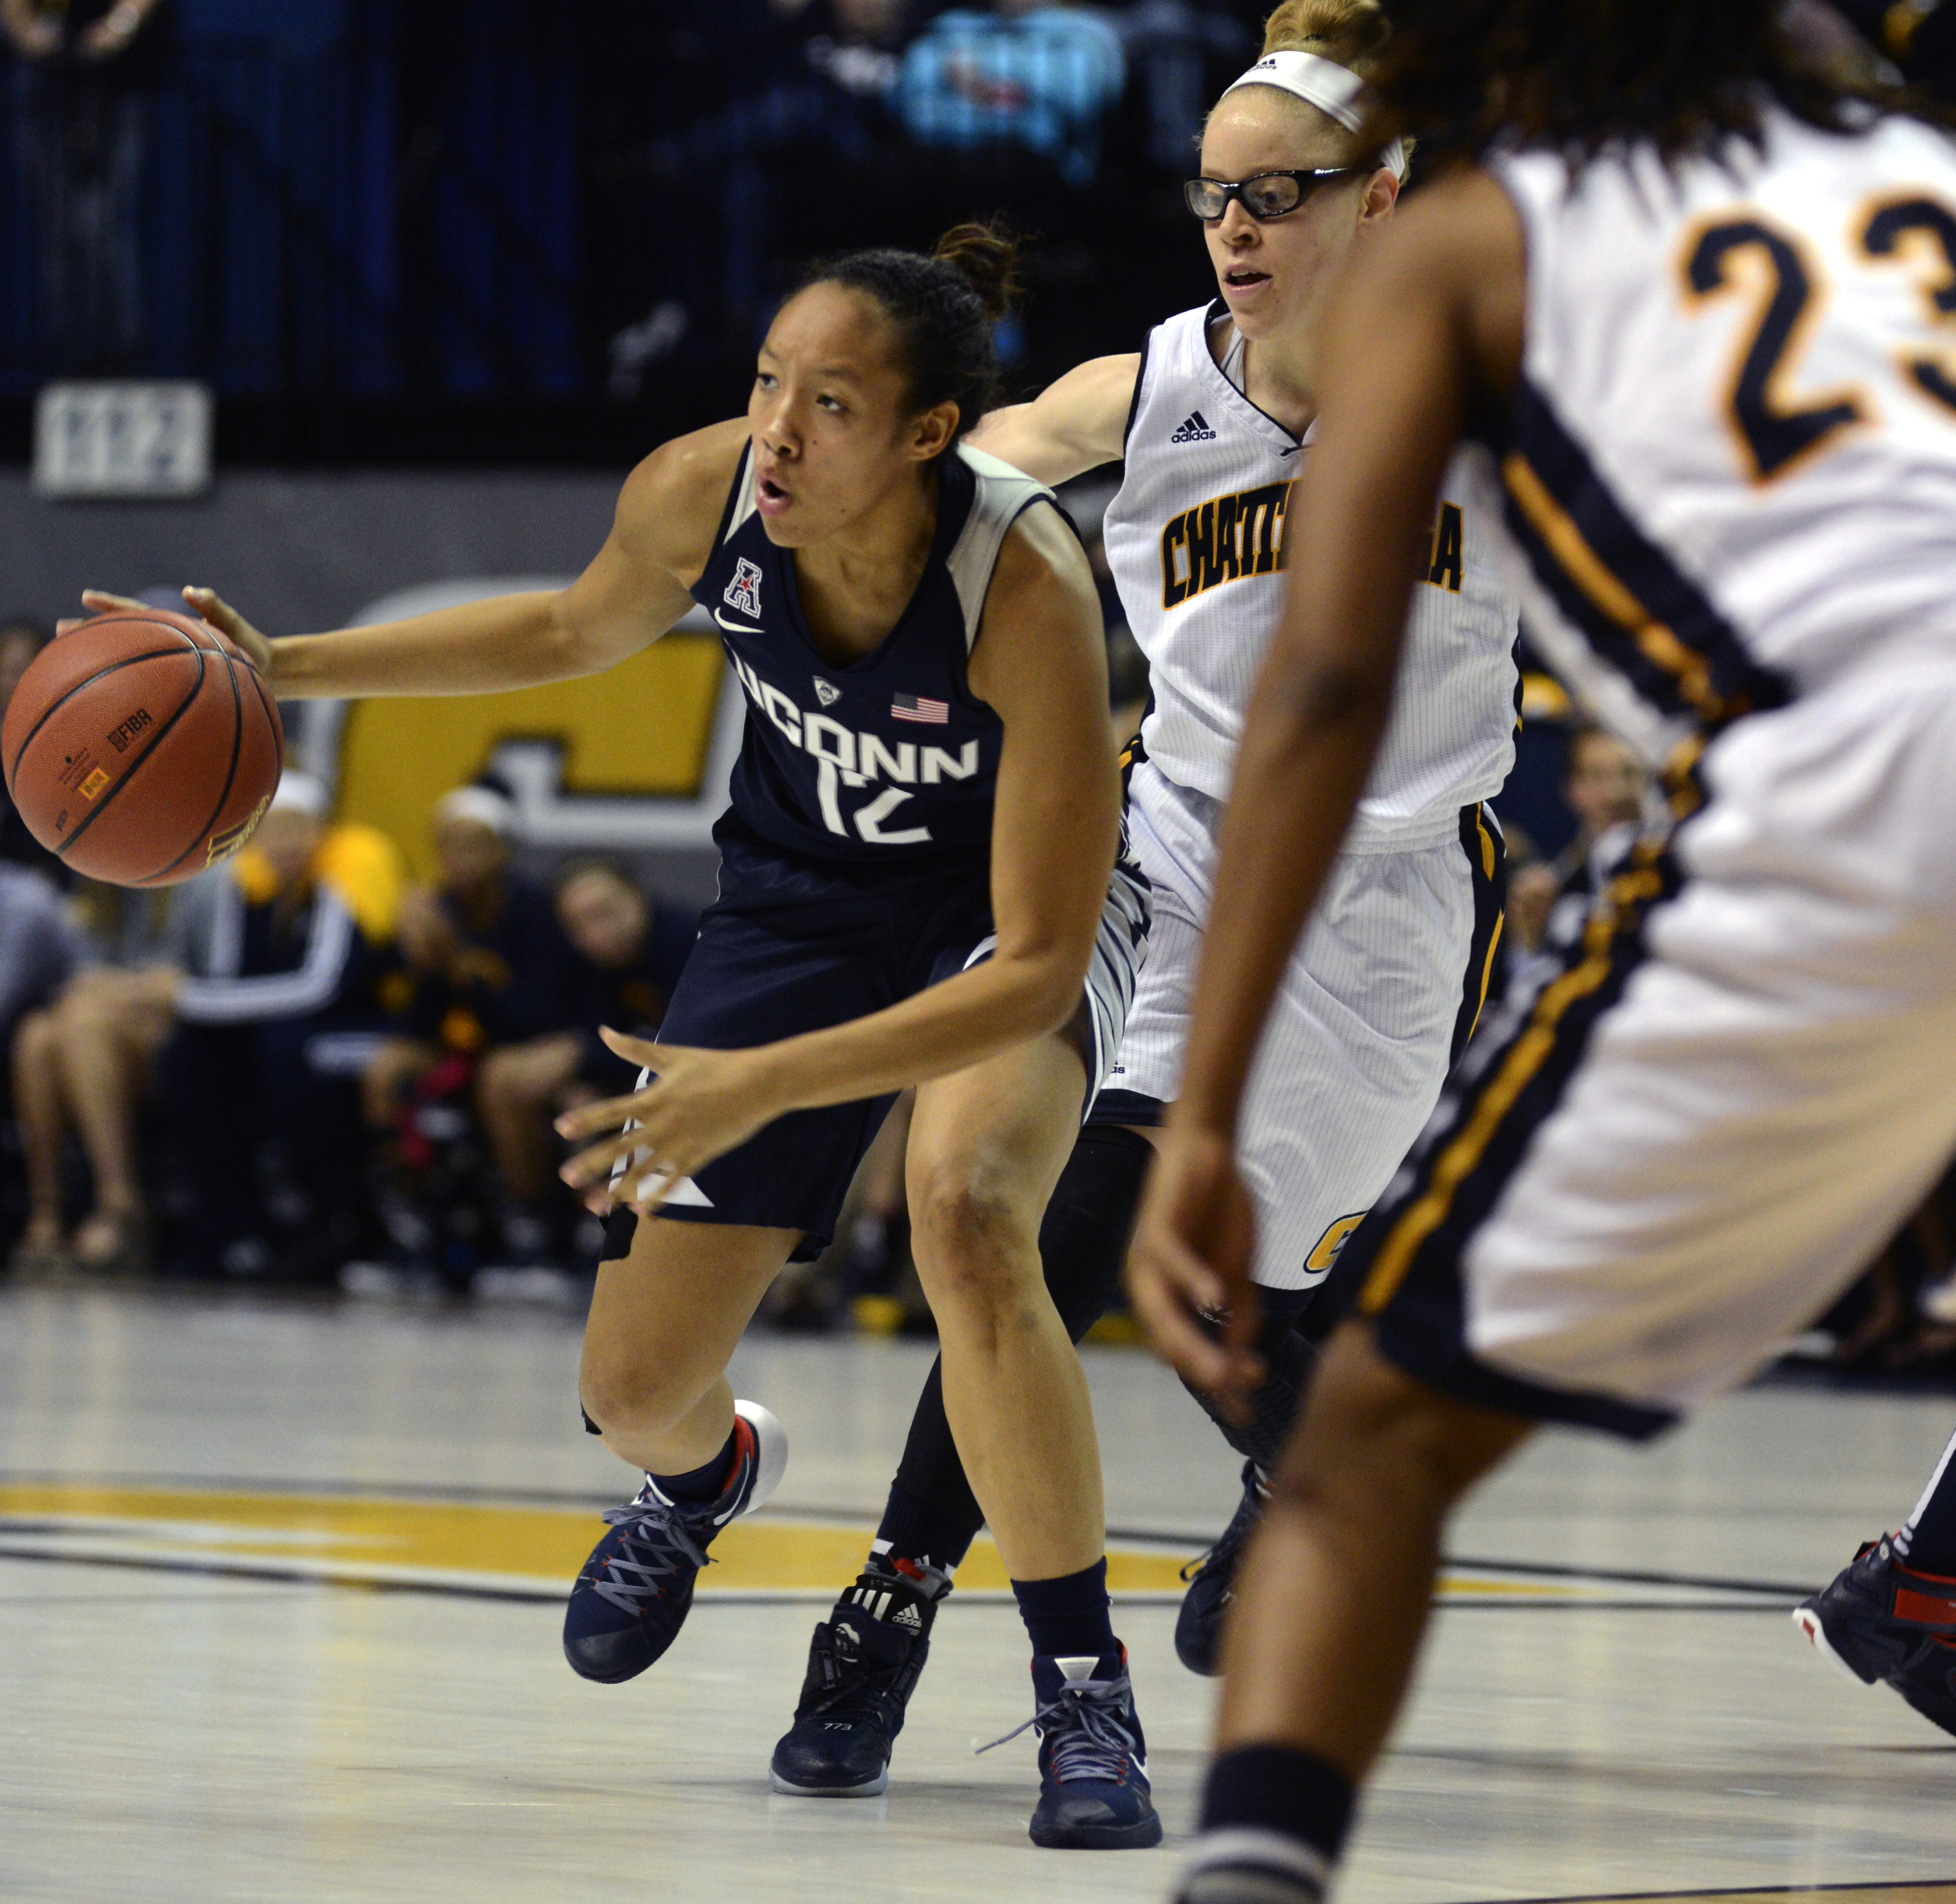 Connecticut's Saniya Chong (12) drives the ball against Chattanooga's Alicia Payne (1) and Moses Johnson (23) in the second half of an NCAA college basketball game Monday, Nov. 30, 2015, in Chattanooga, Tenn. (AP Photo/Billy Weeks)